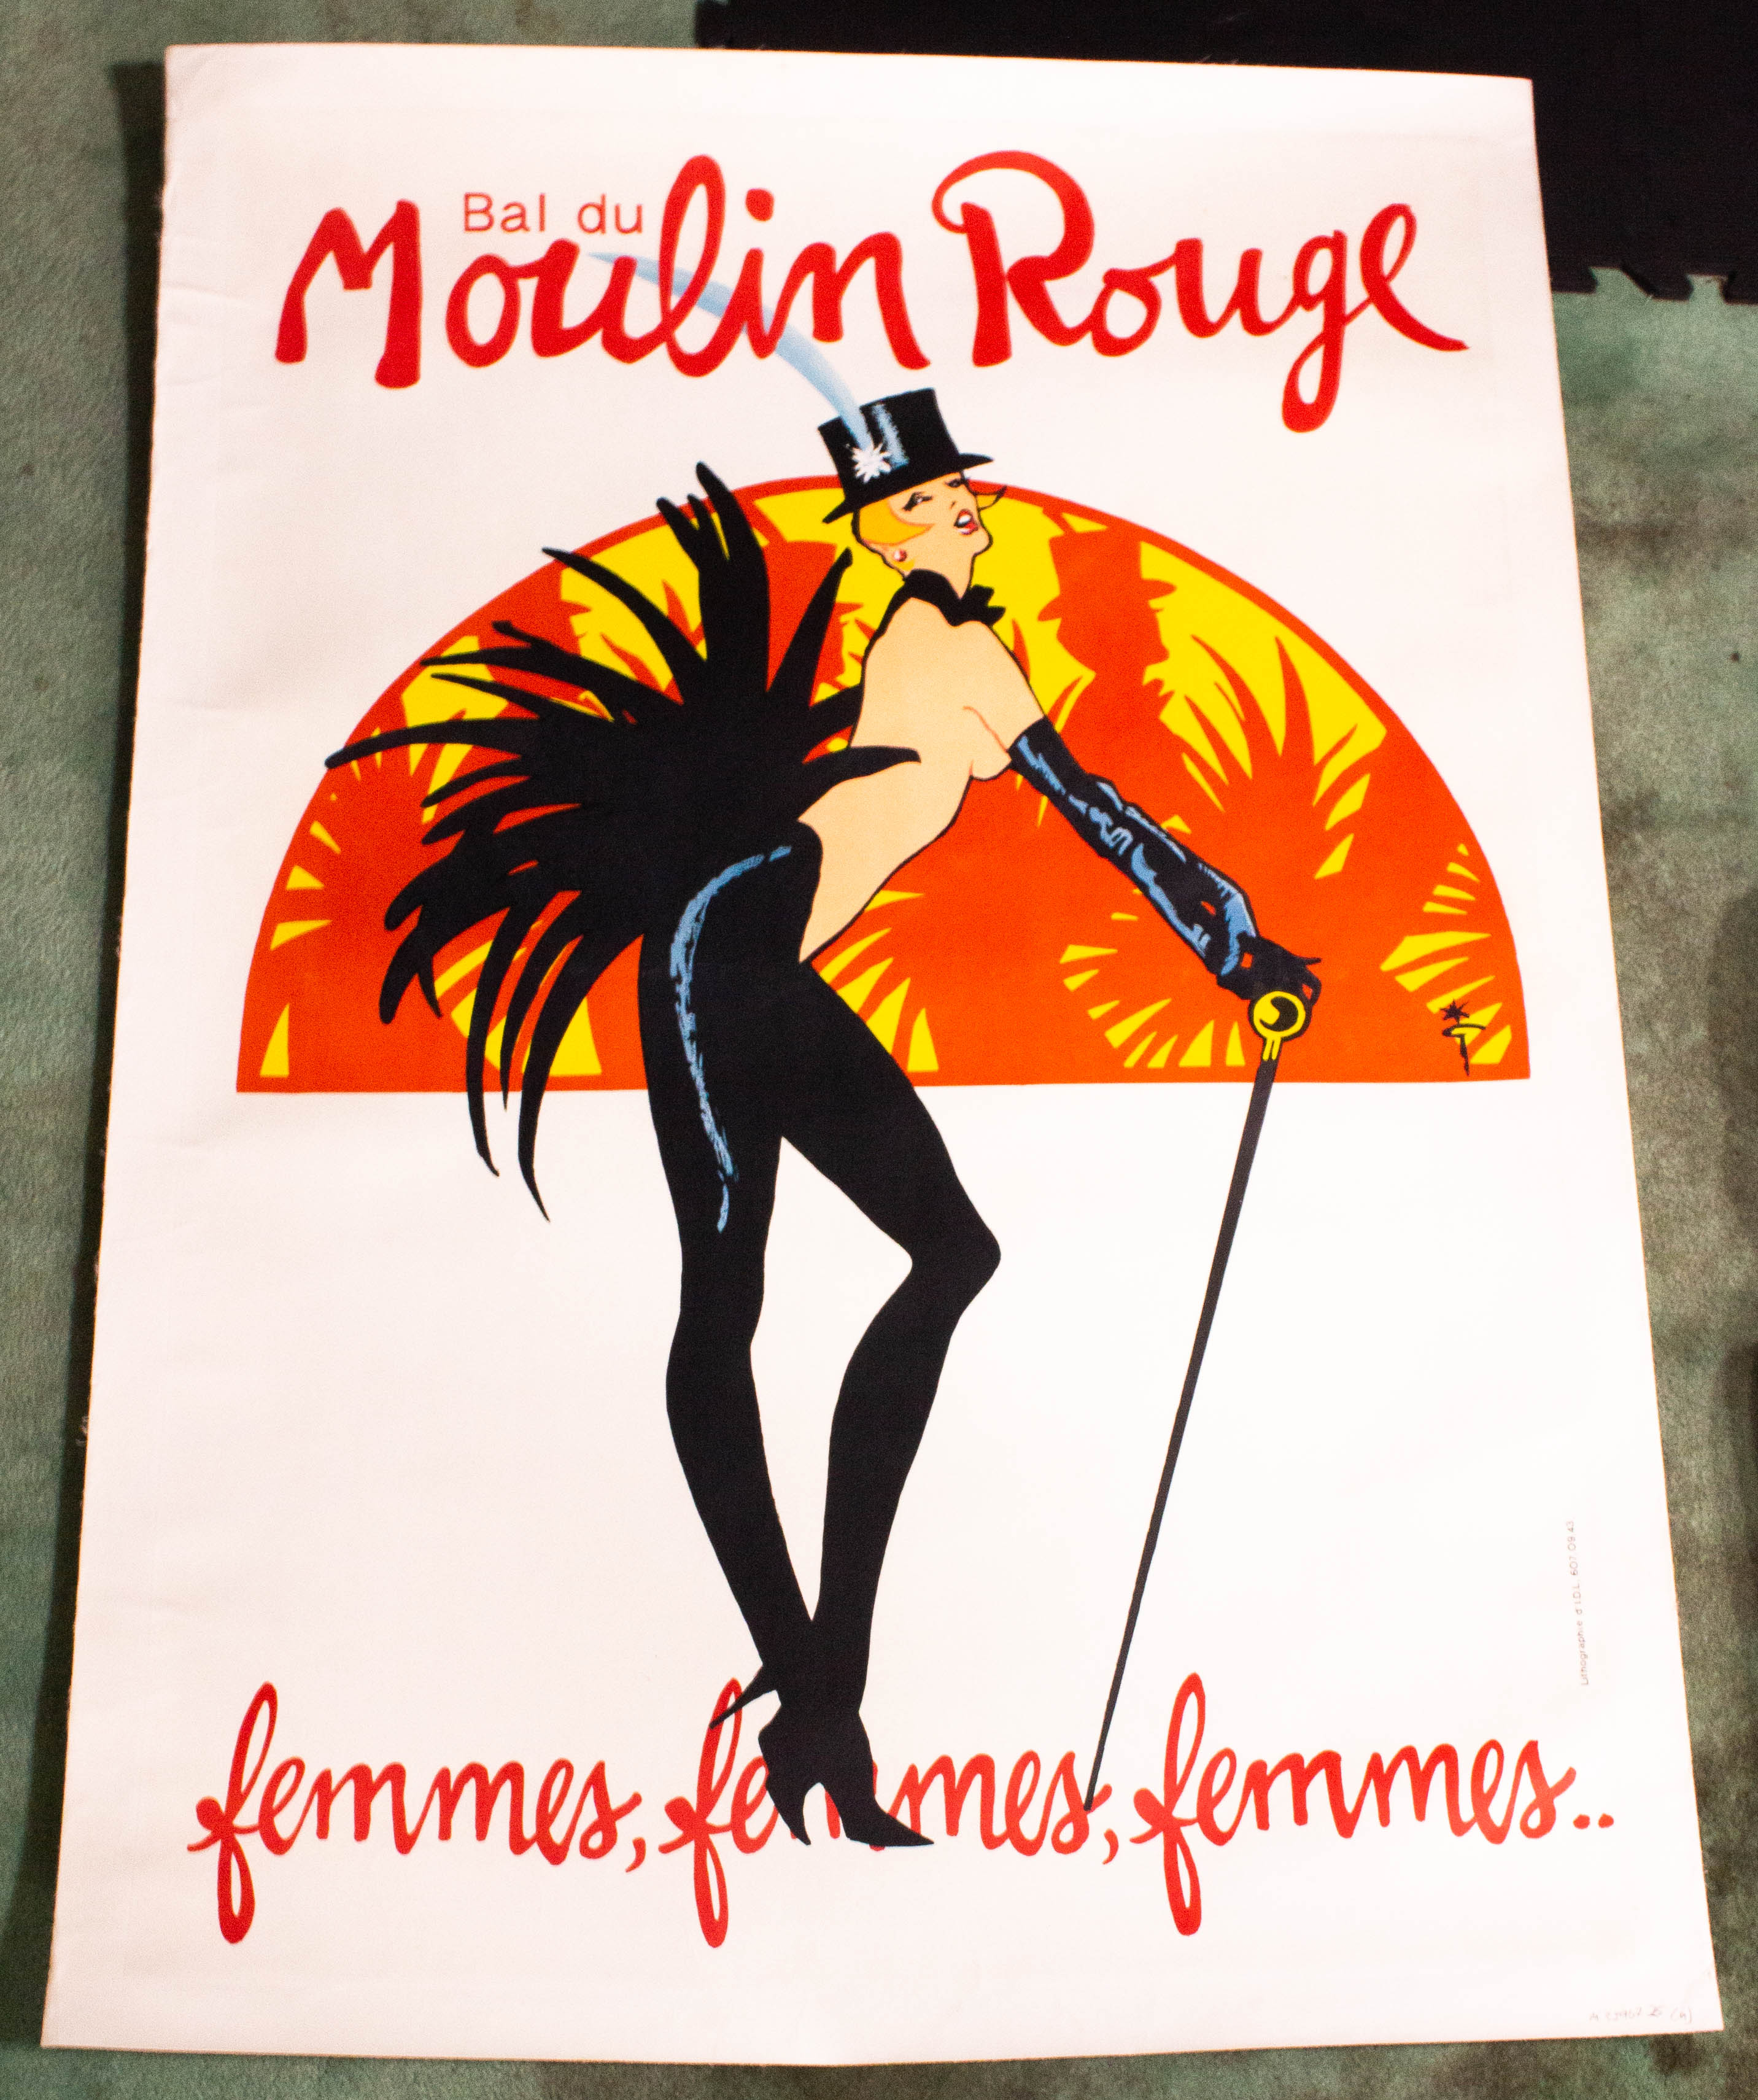 "Image for Bal Du Moulin Rouge Femmes Femmes Femmes French Theatre & Opera Poster. 34 X 48"" Lithographaa"